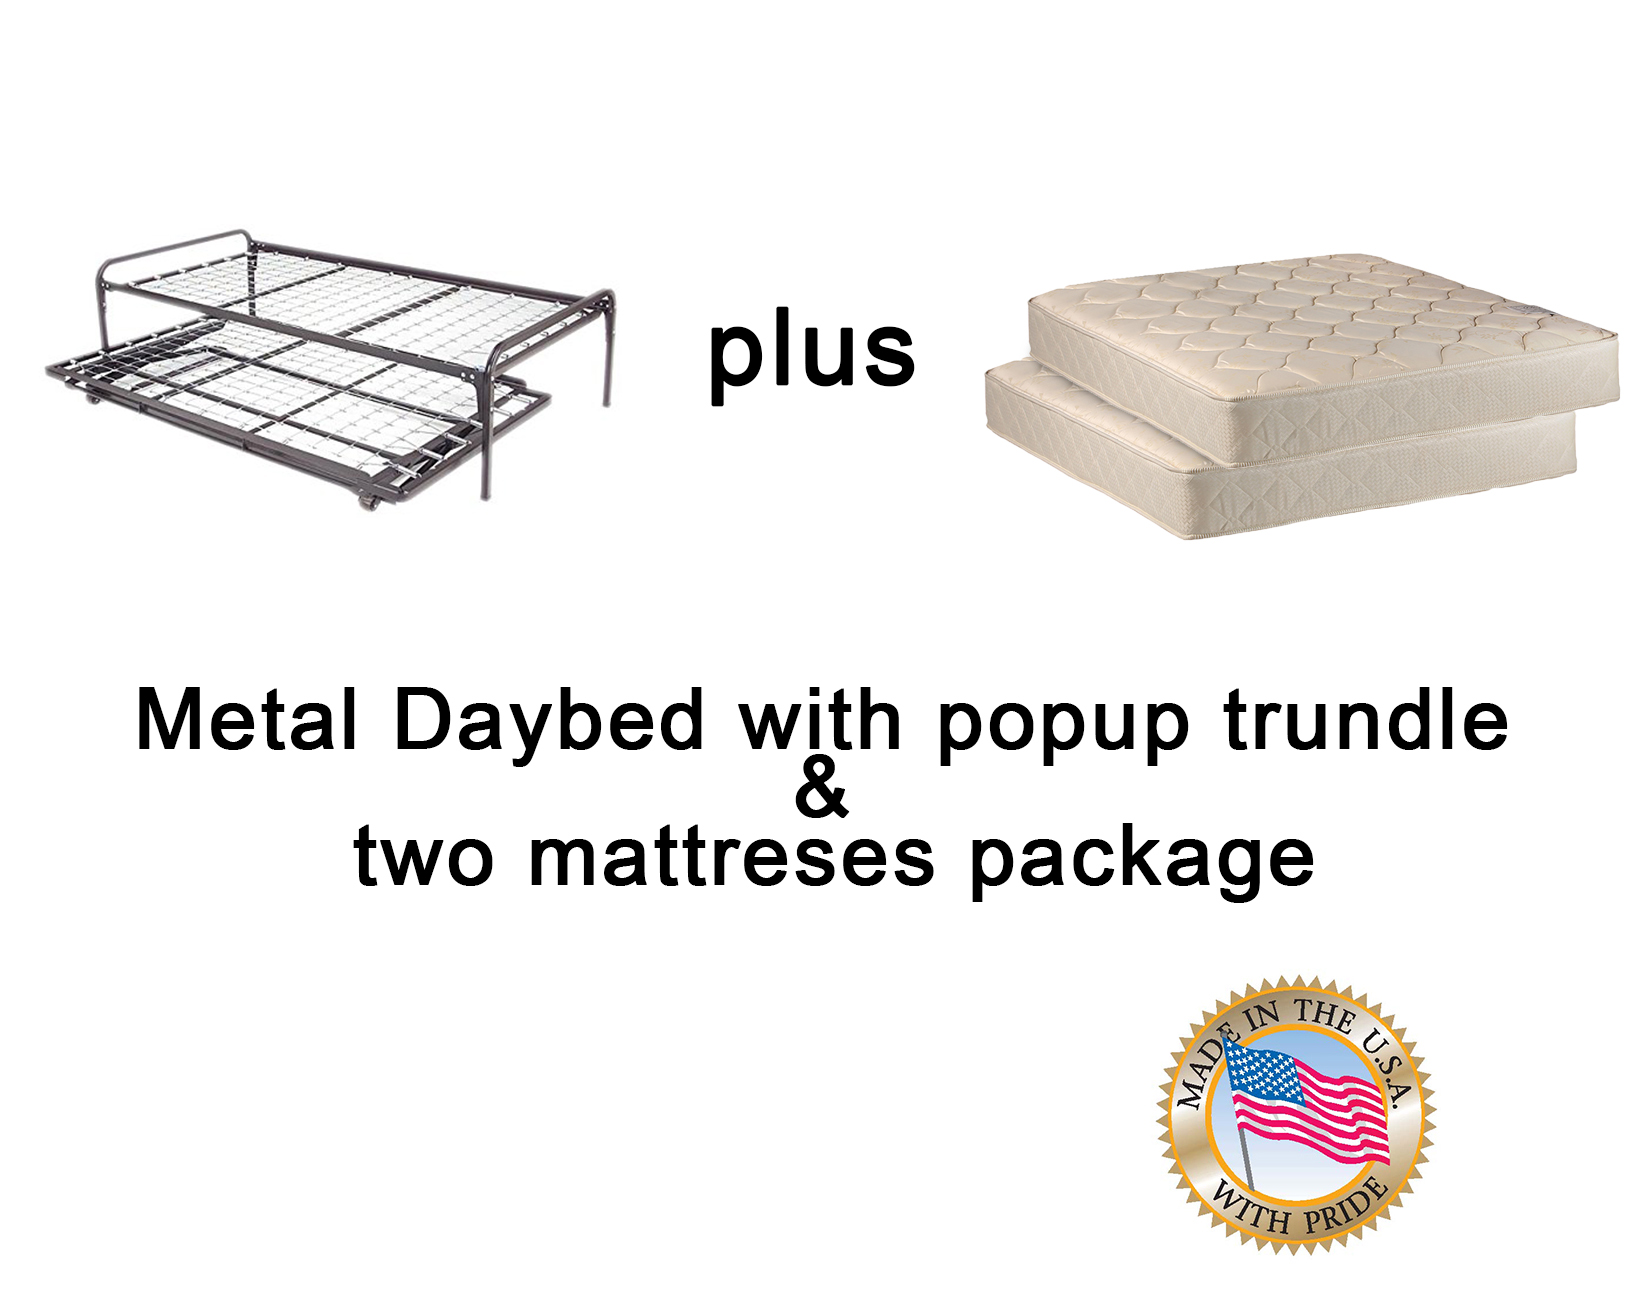 metal day bed daybed frame pop up 33 trundle with great firm mattresses included package deal